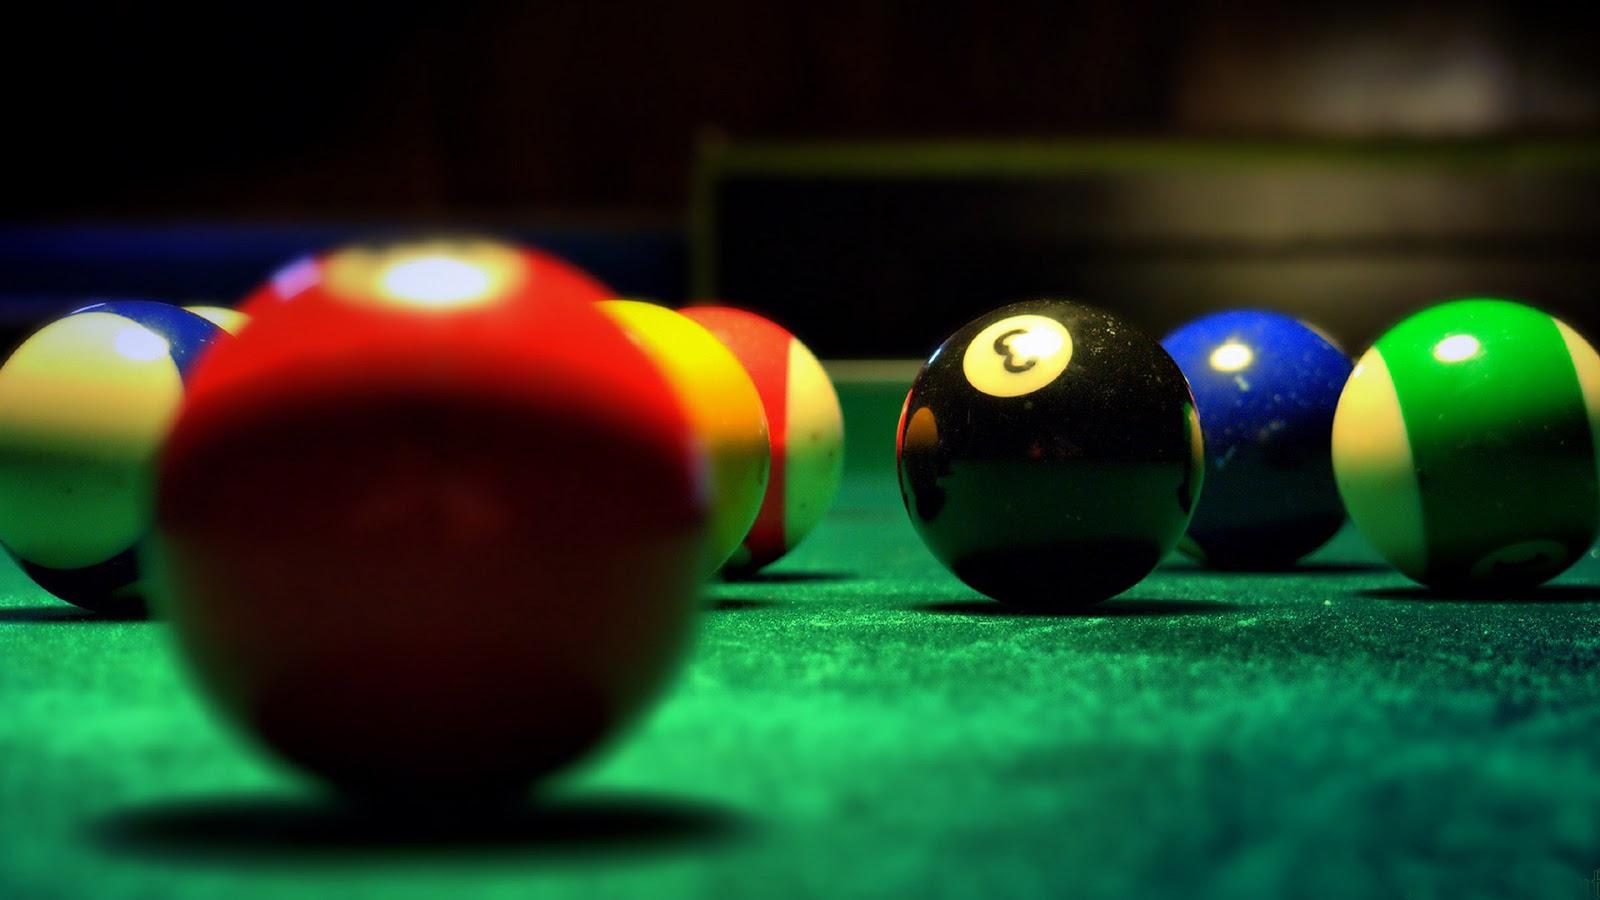 Top 42 beautiful pool table and snooker wallpapers in hd - Pool table images ...